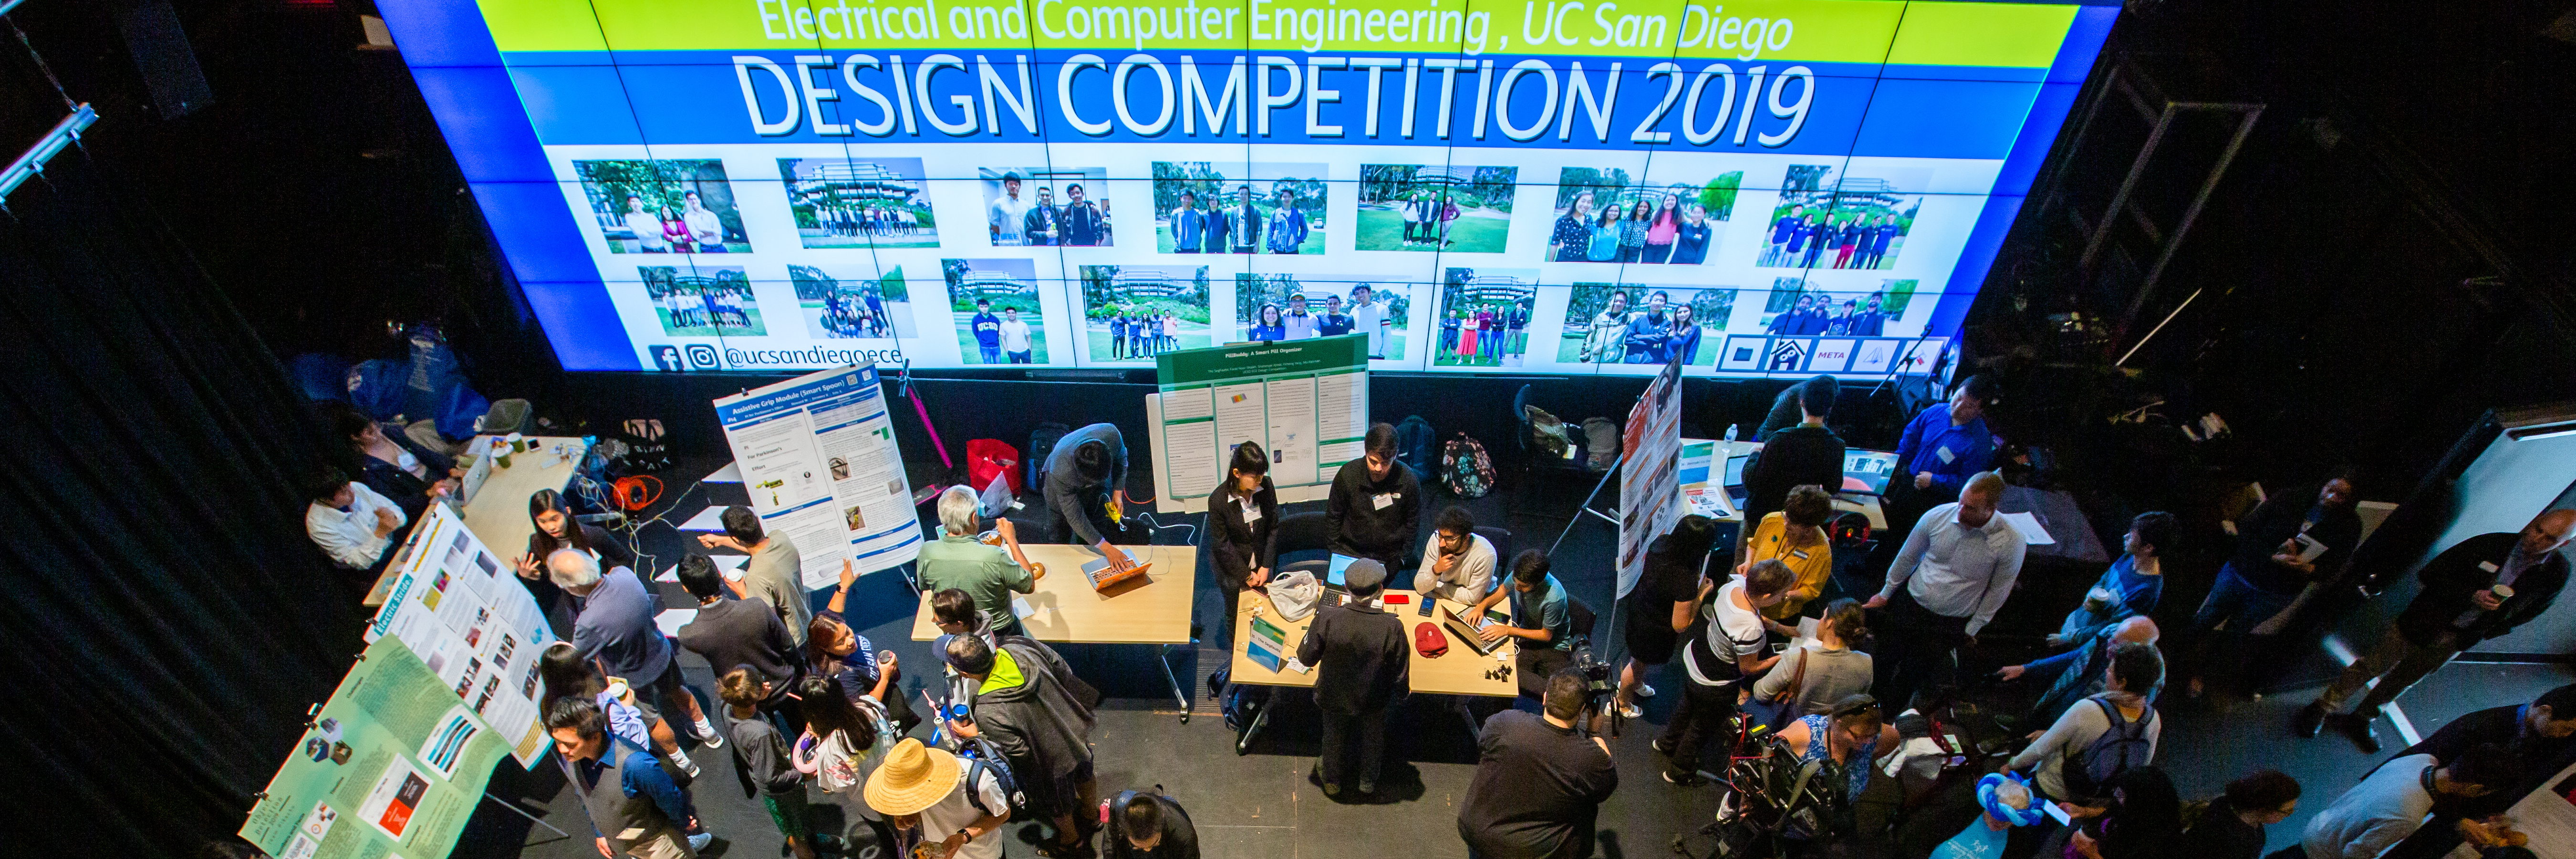 Design Competition Exhibition Hall